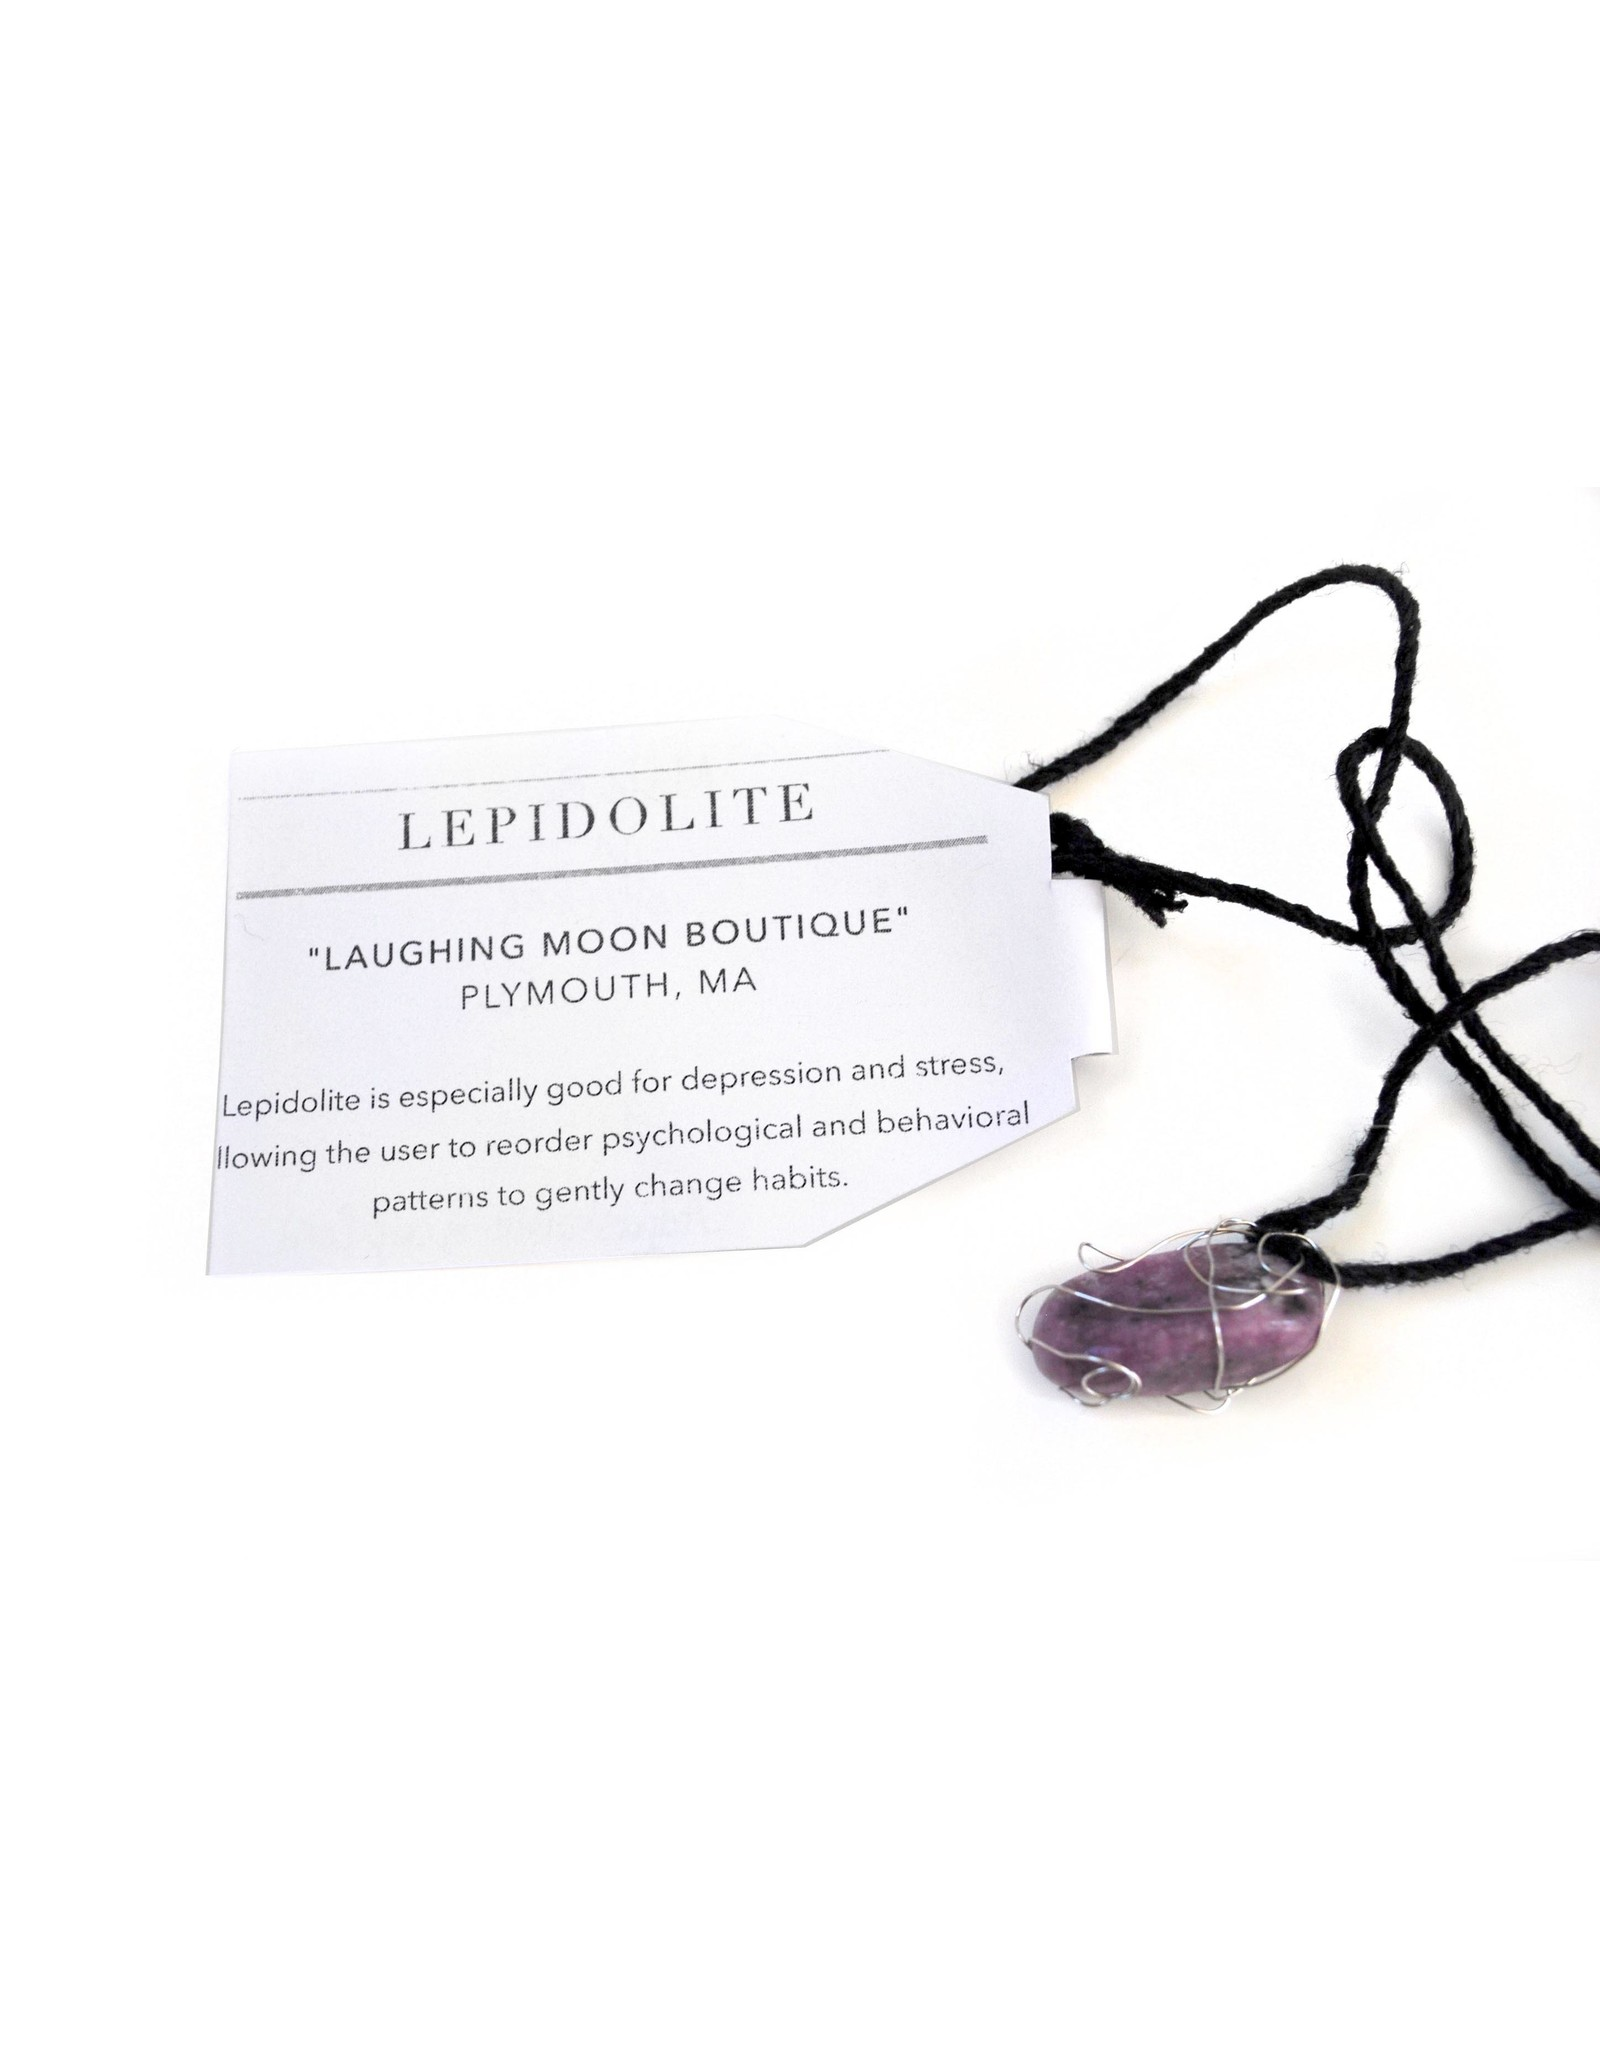 Lepidolite Necklace, Mikey Emme